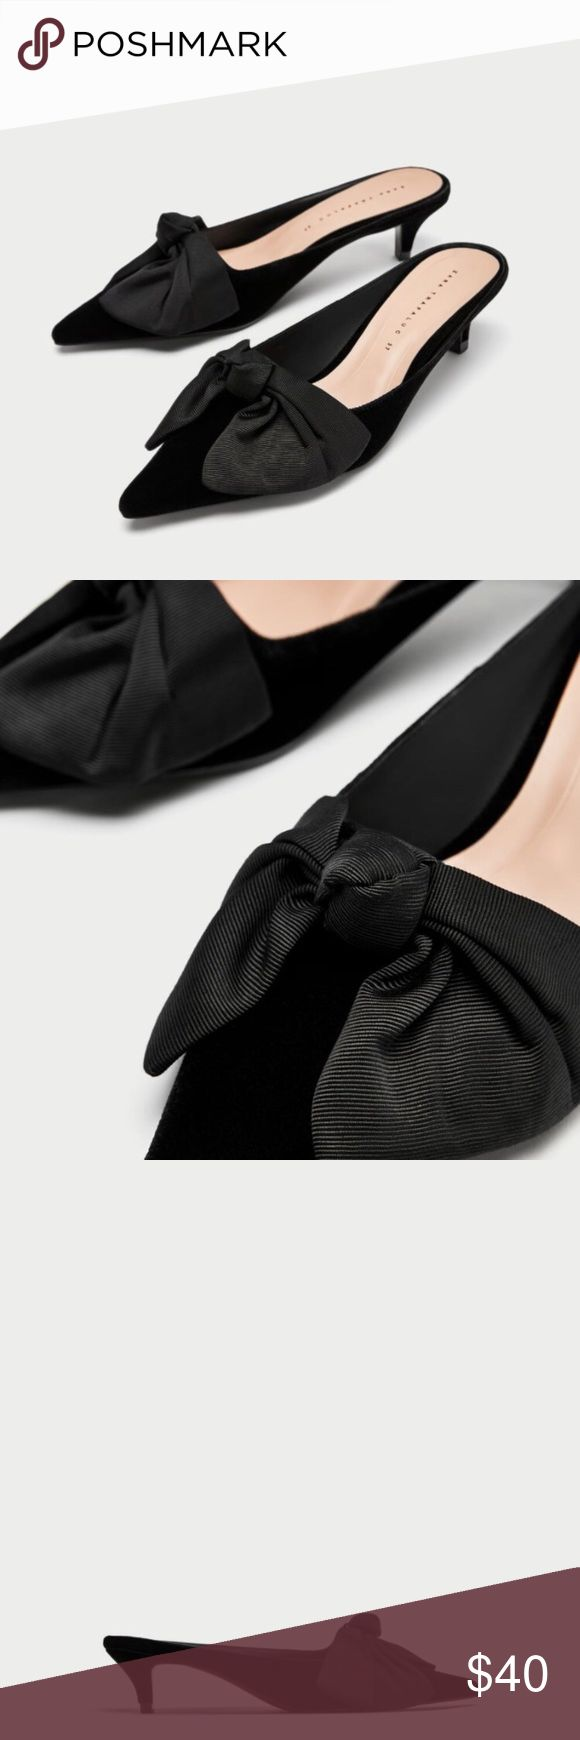 "Mules with Bow Mules with Bow   • 1.6"" Heel height  • Easy slip on w/ kitten Heel  📬  - Orders ship w/in 24- 48 hrs. Monday - Friday.  - Orders placed on weekends/holidays ship next business day.   Bundle 3 or more items for Private Offer Discount 😉 Zara Shoes Mules & Clogs"